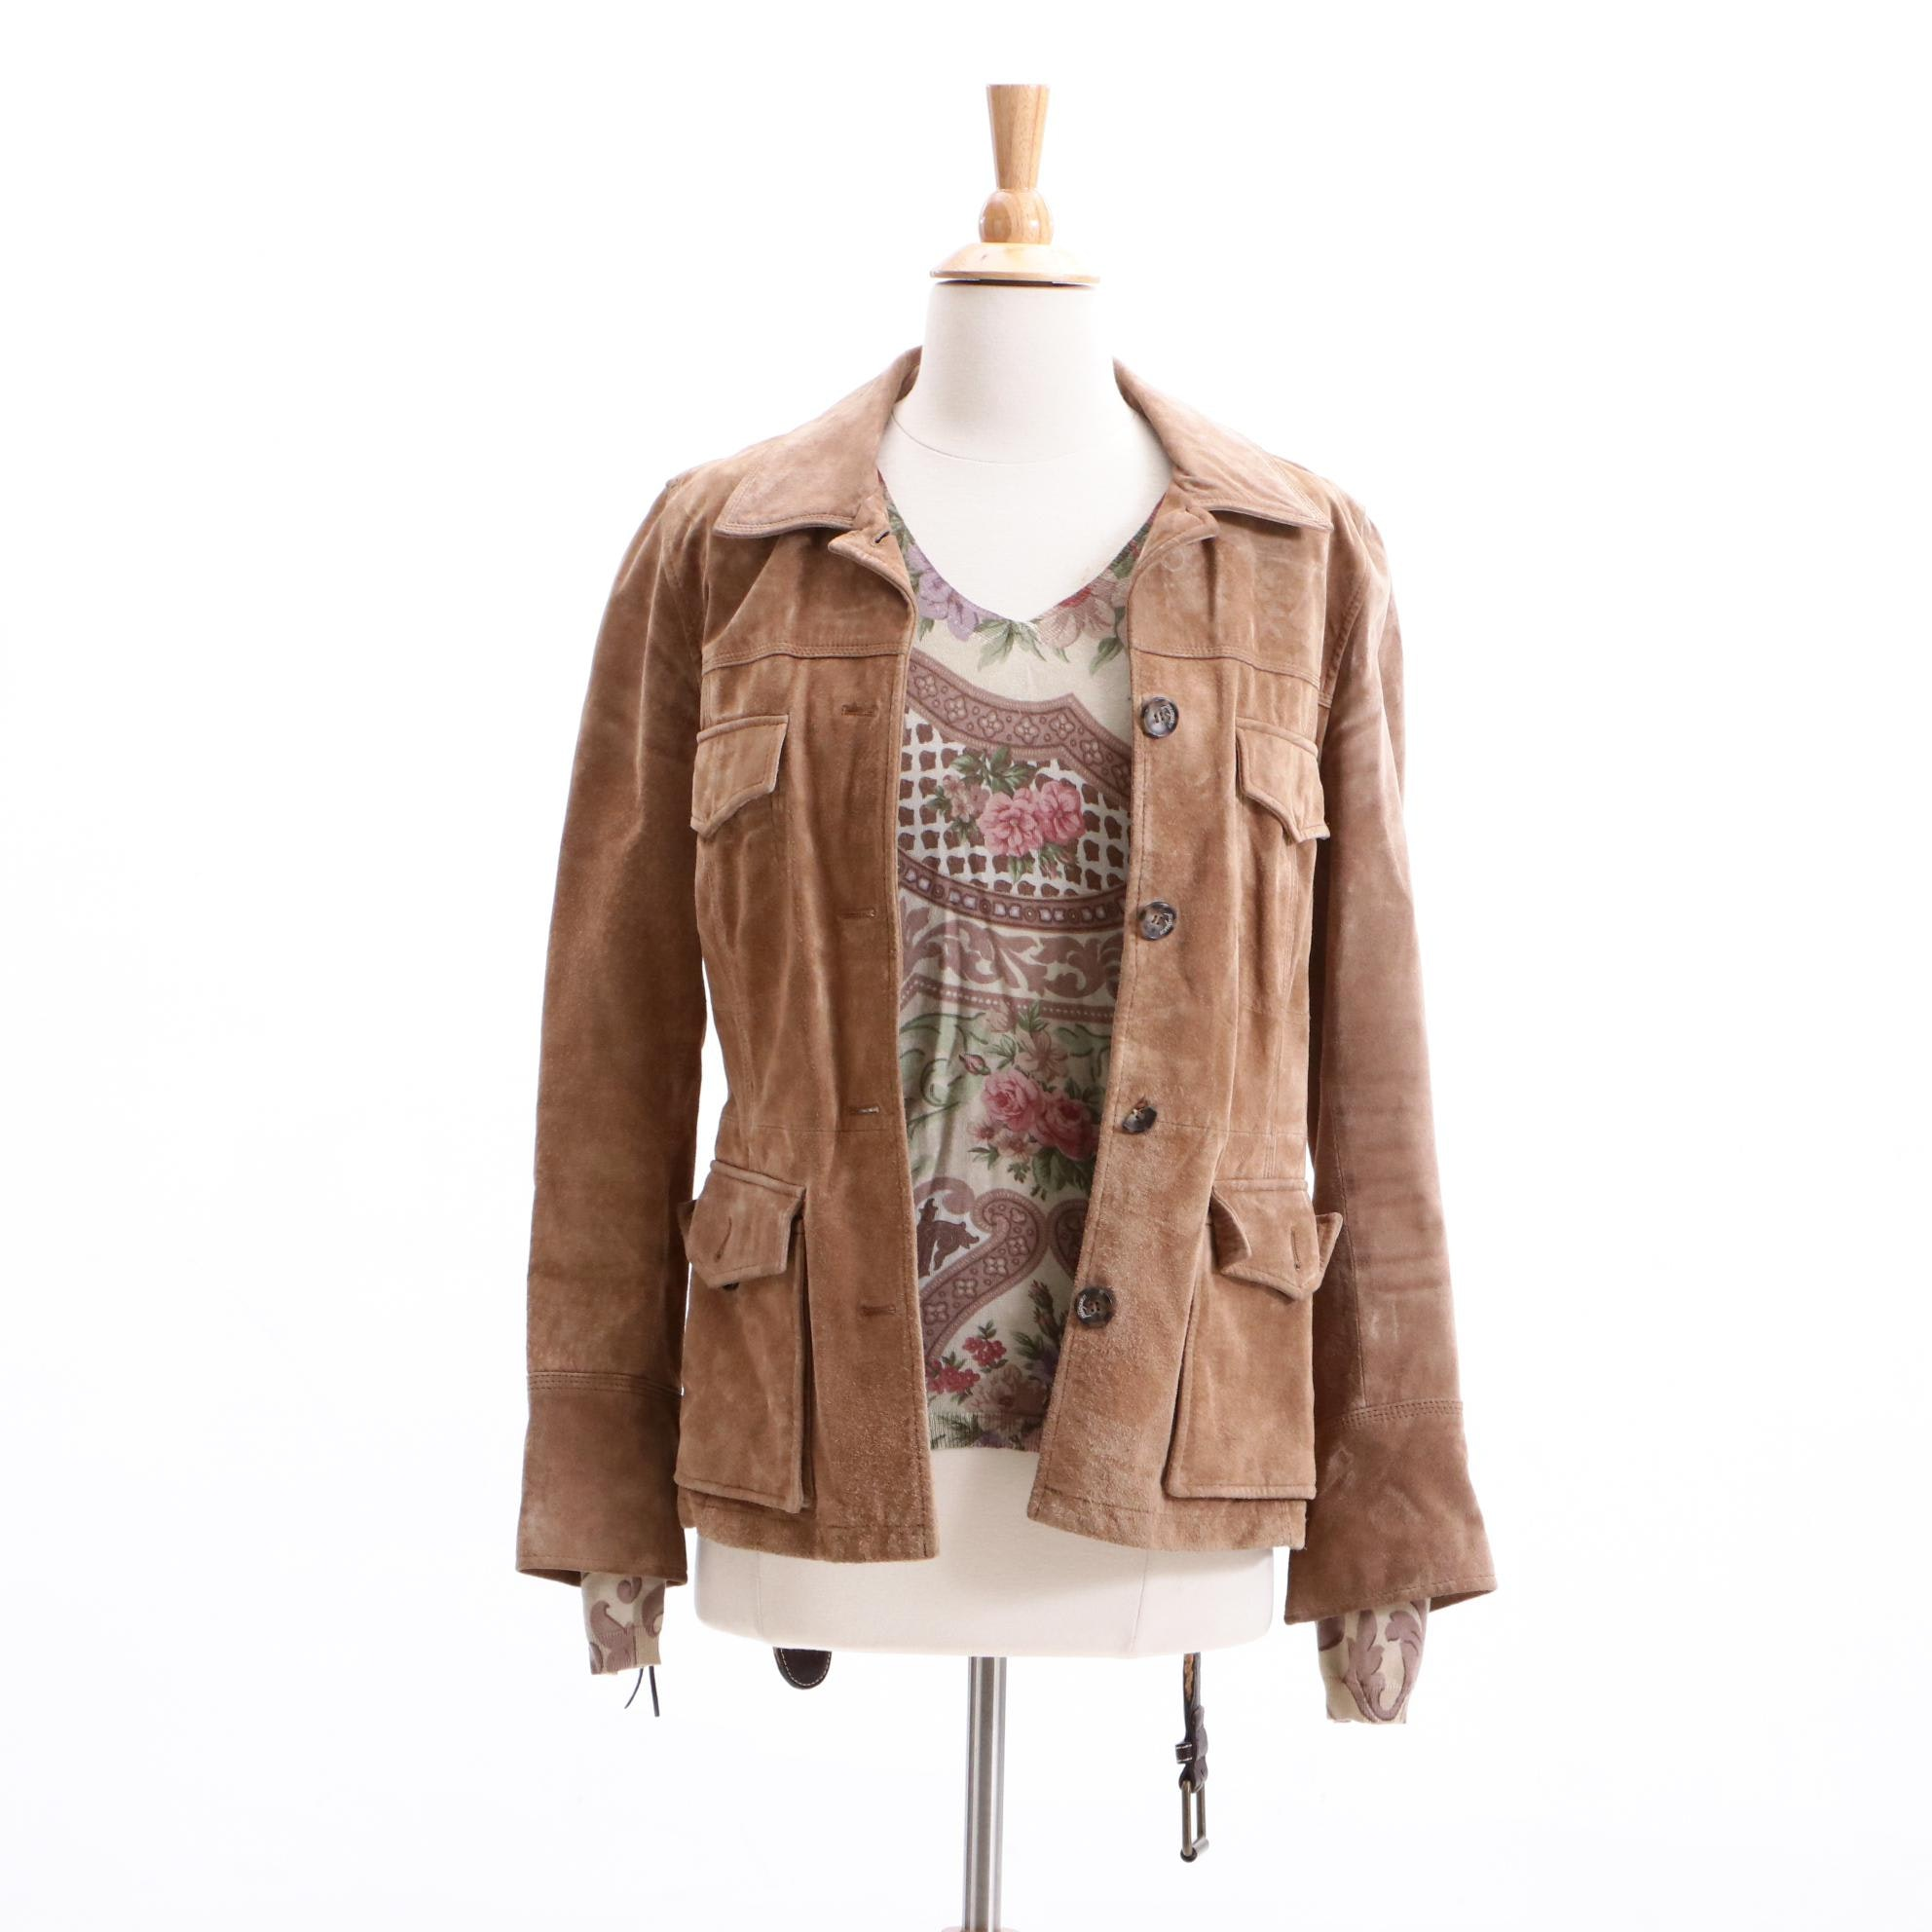 Max Mara Weekend Suede Jacket and Etro Silk and Cashmere Sweater